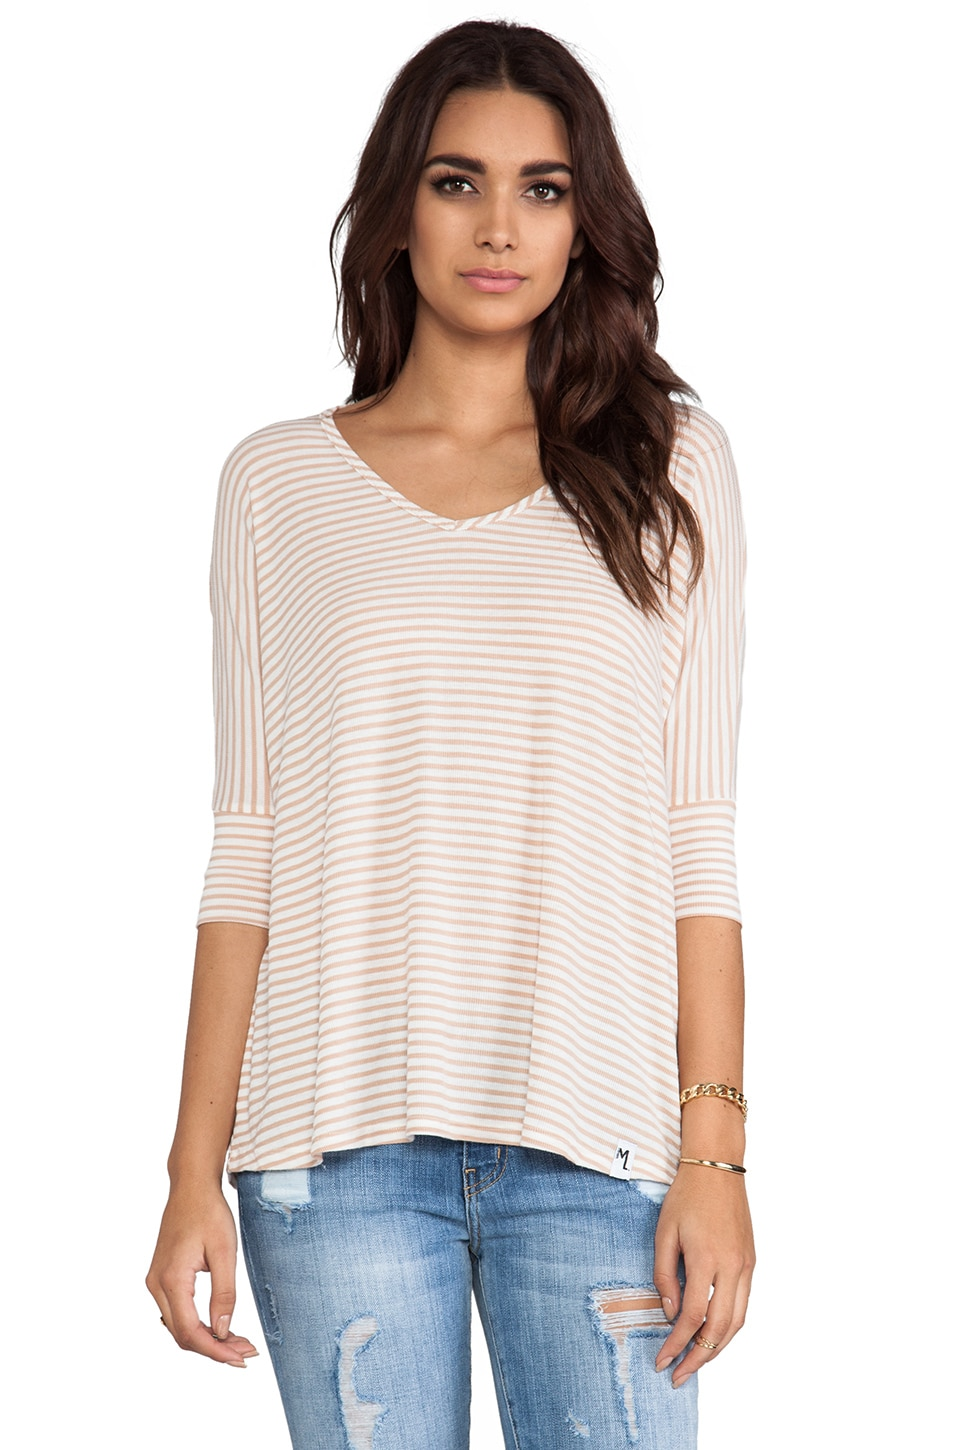 Michael Lauren Dylan 3/4 V-Neck Draper Tee in Buff Stripe